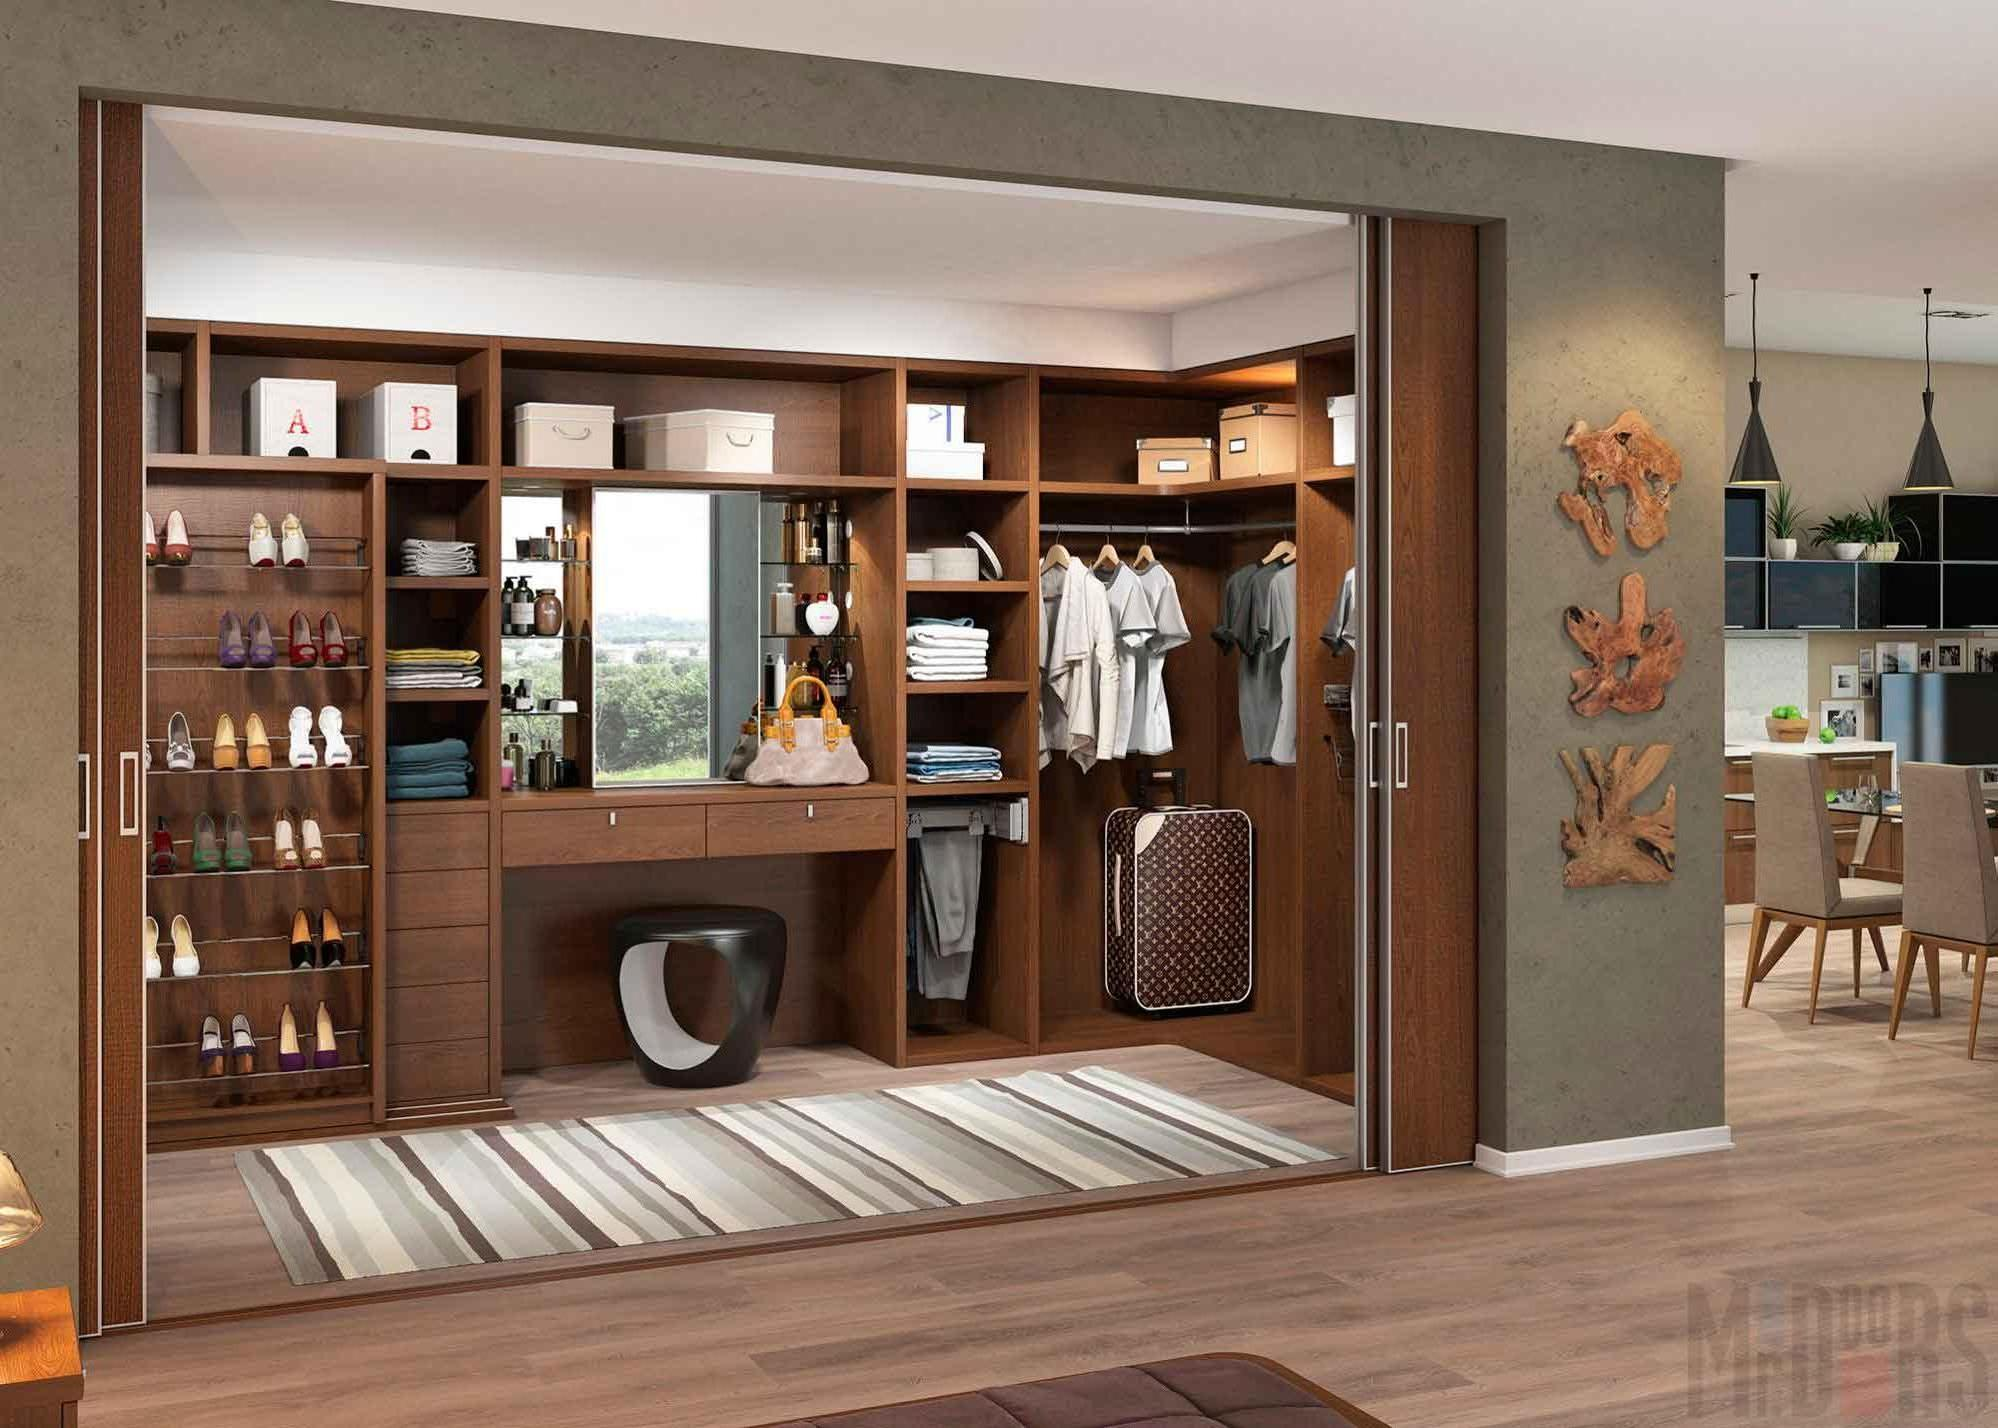 Interior dressing room in the style of Italian modern